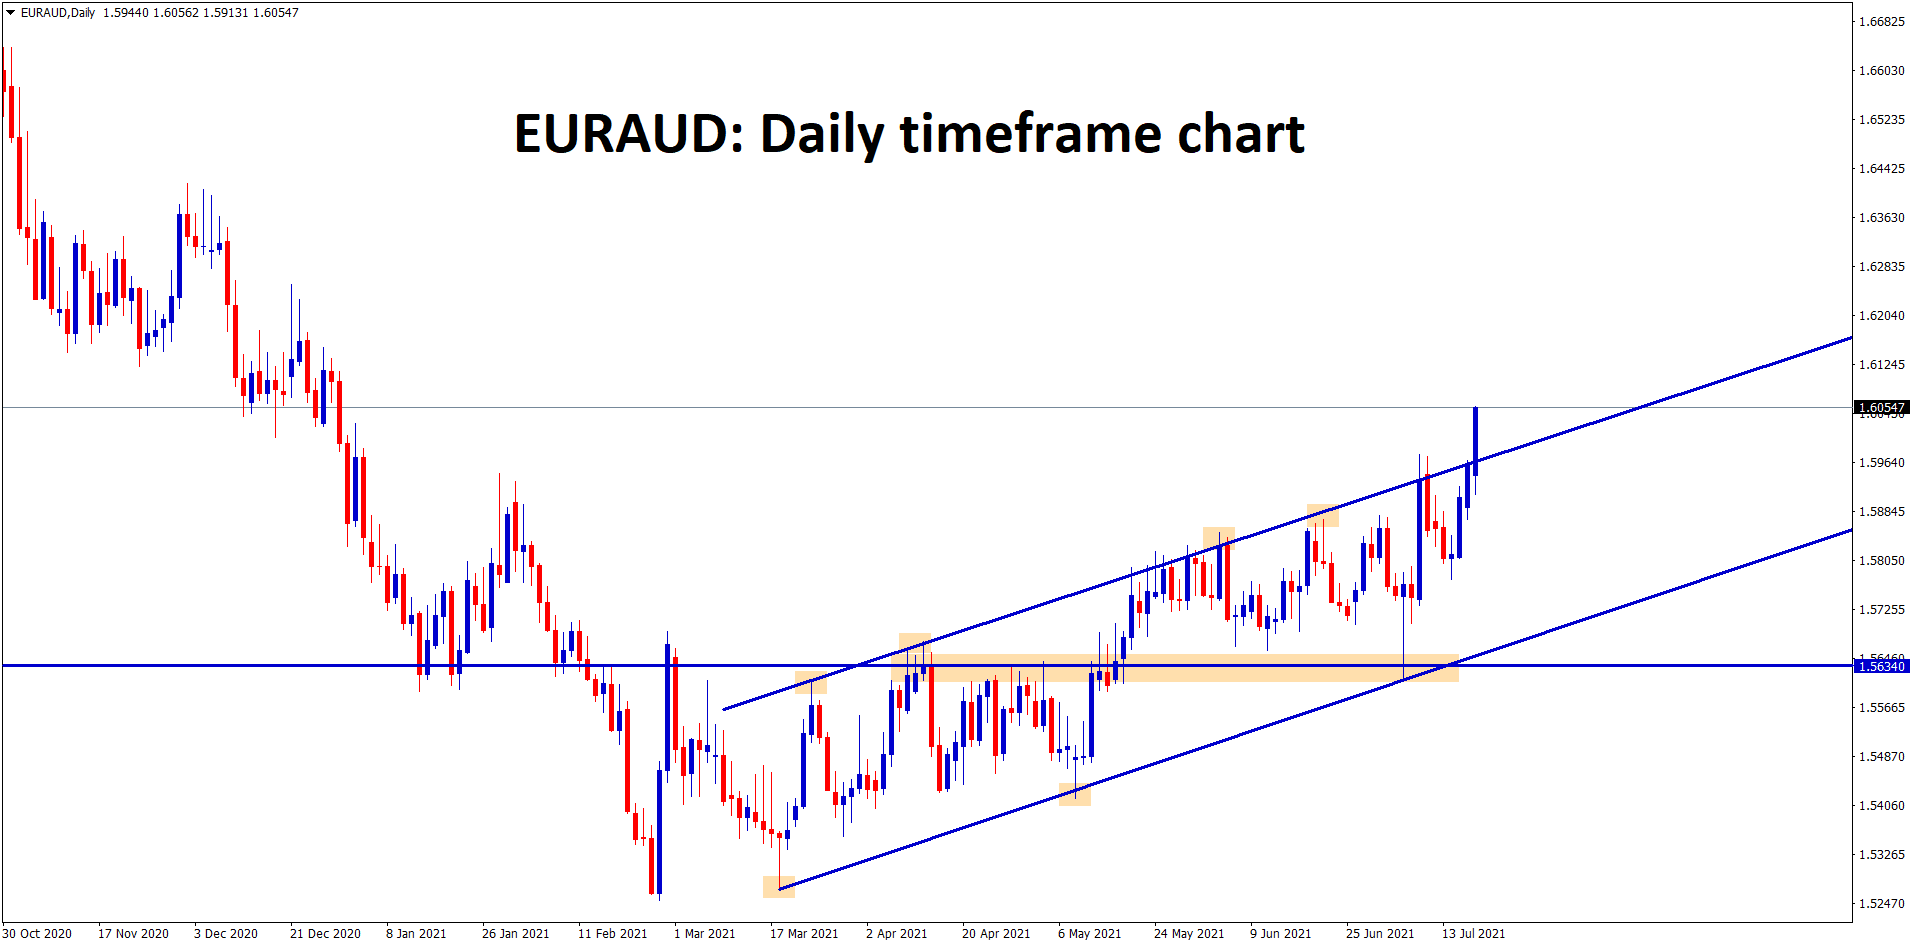 EURAUD continues to move up breaking the higher highs of the uptrend line